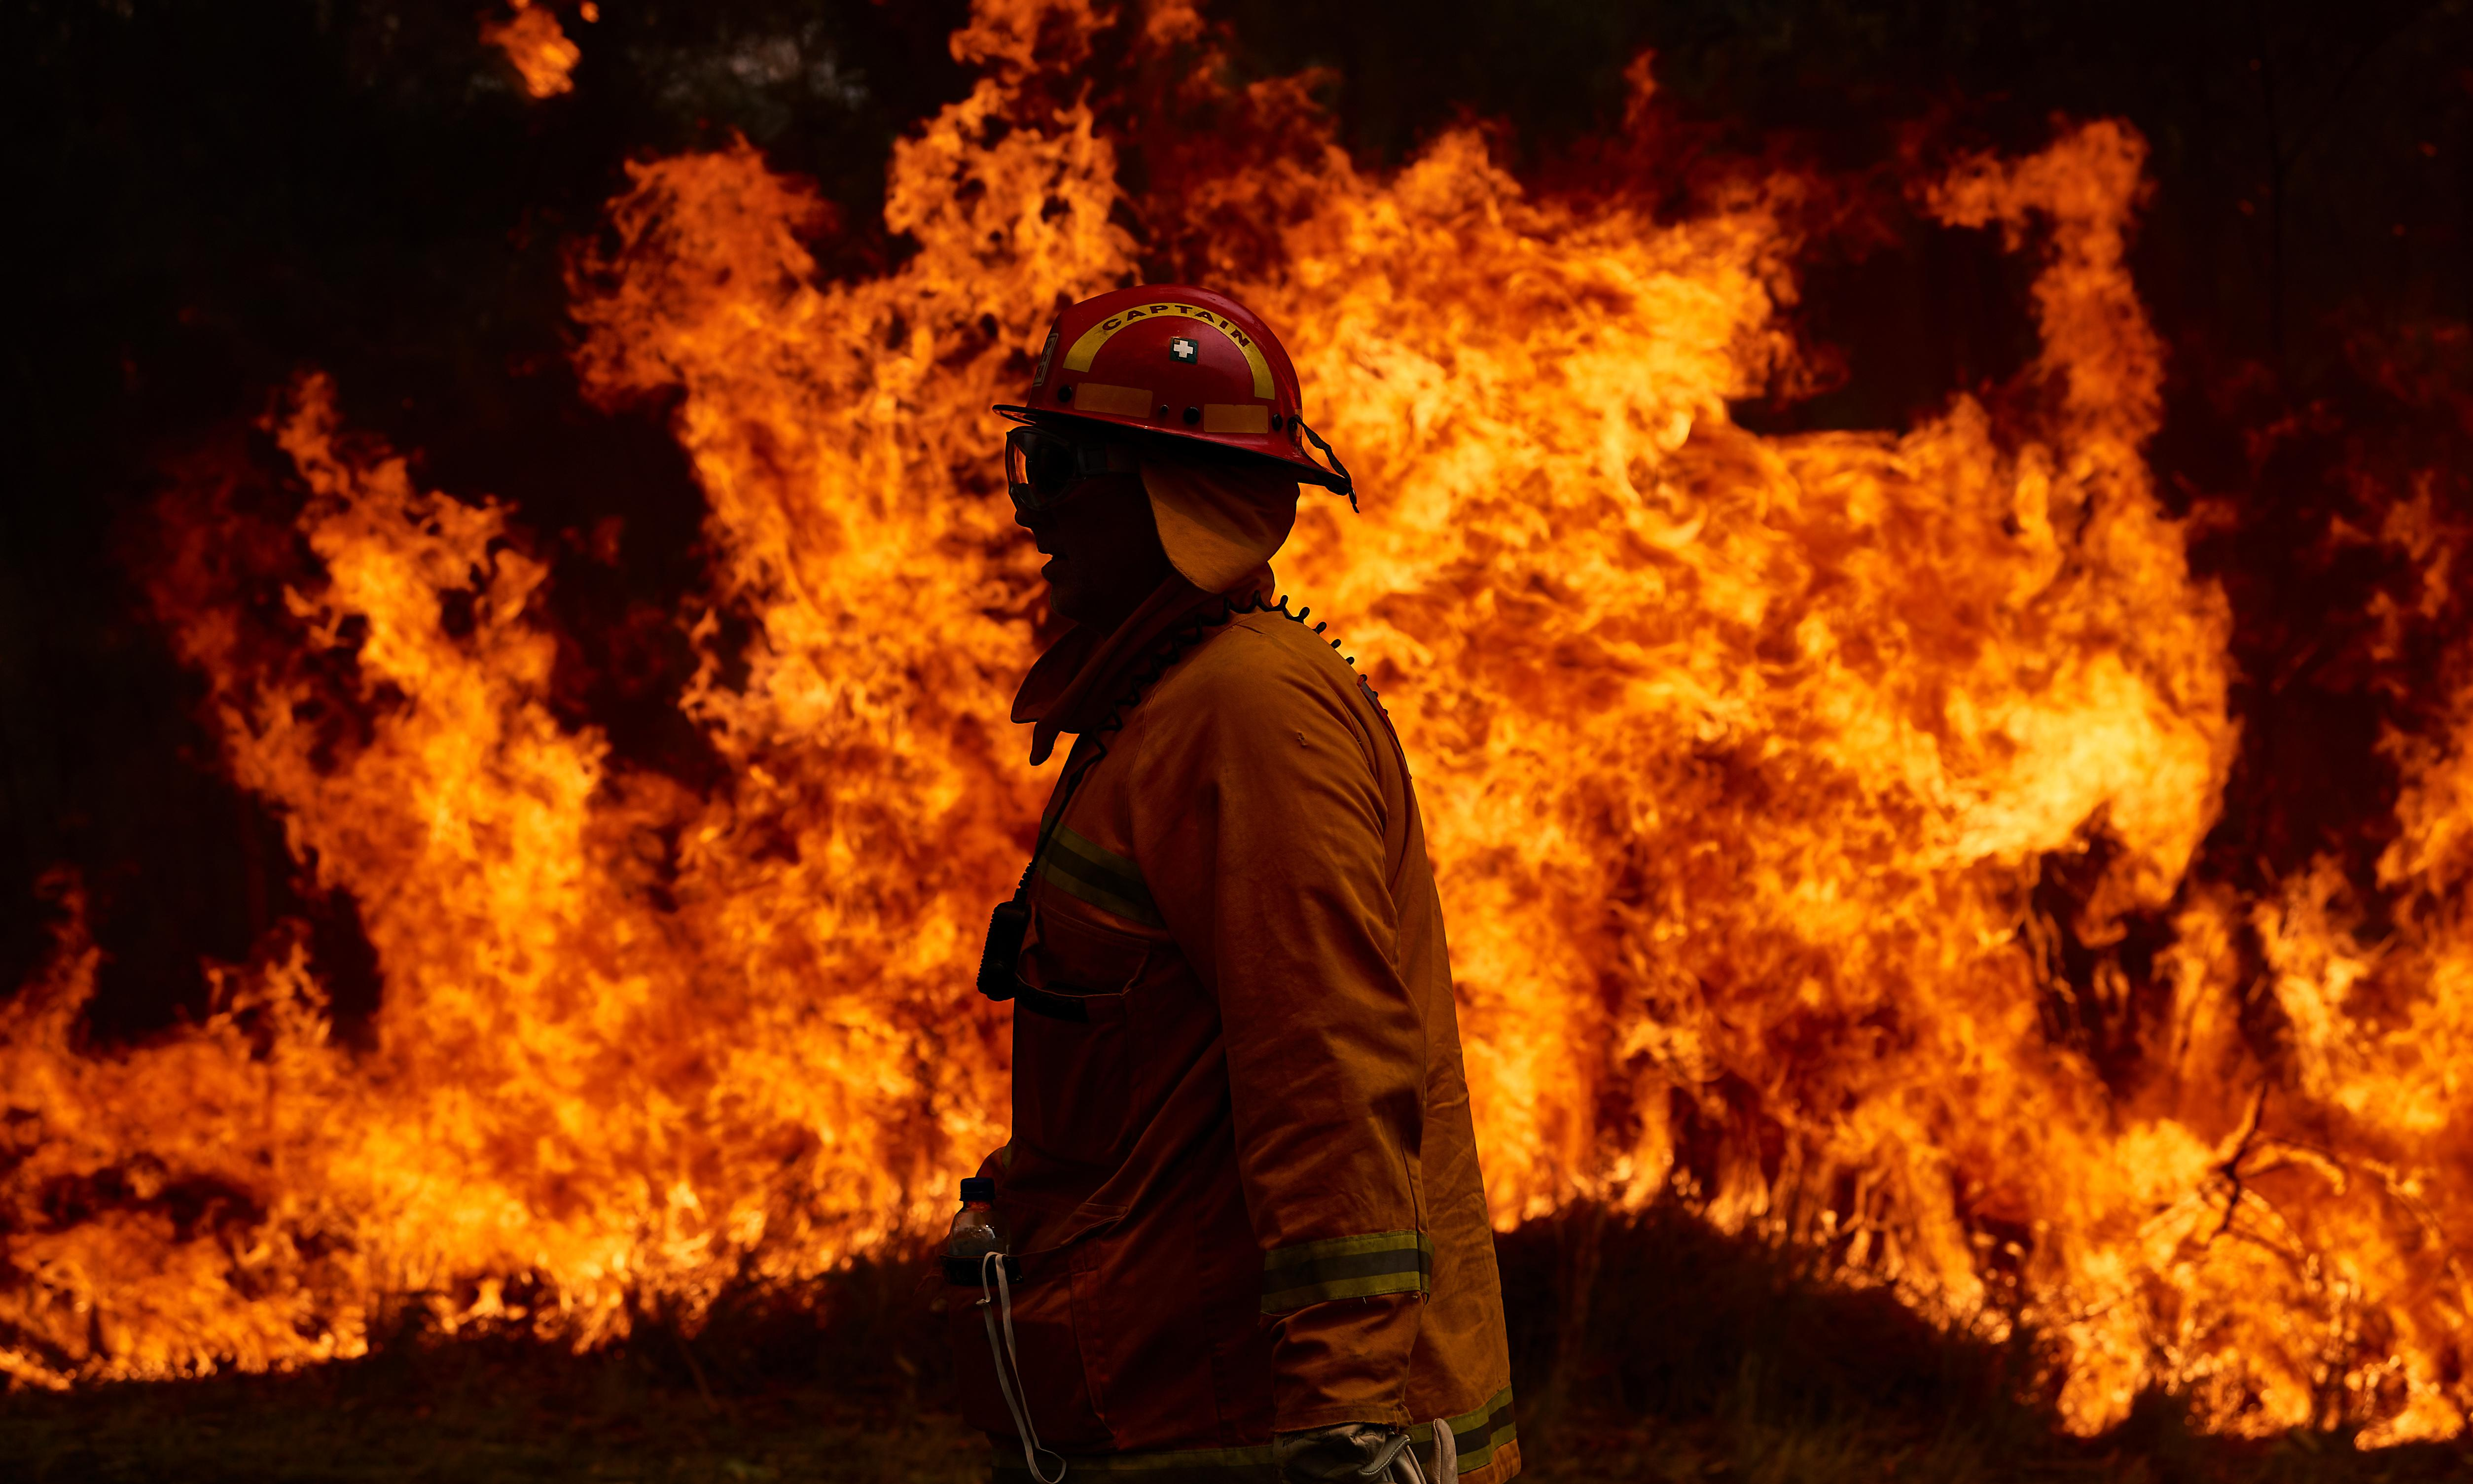 Australian bushfires: firefighters struggle to contain Hawkesbury blaze as catastrophic conditions forecast in WA